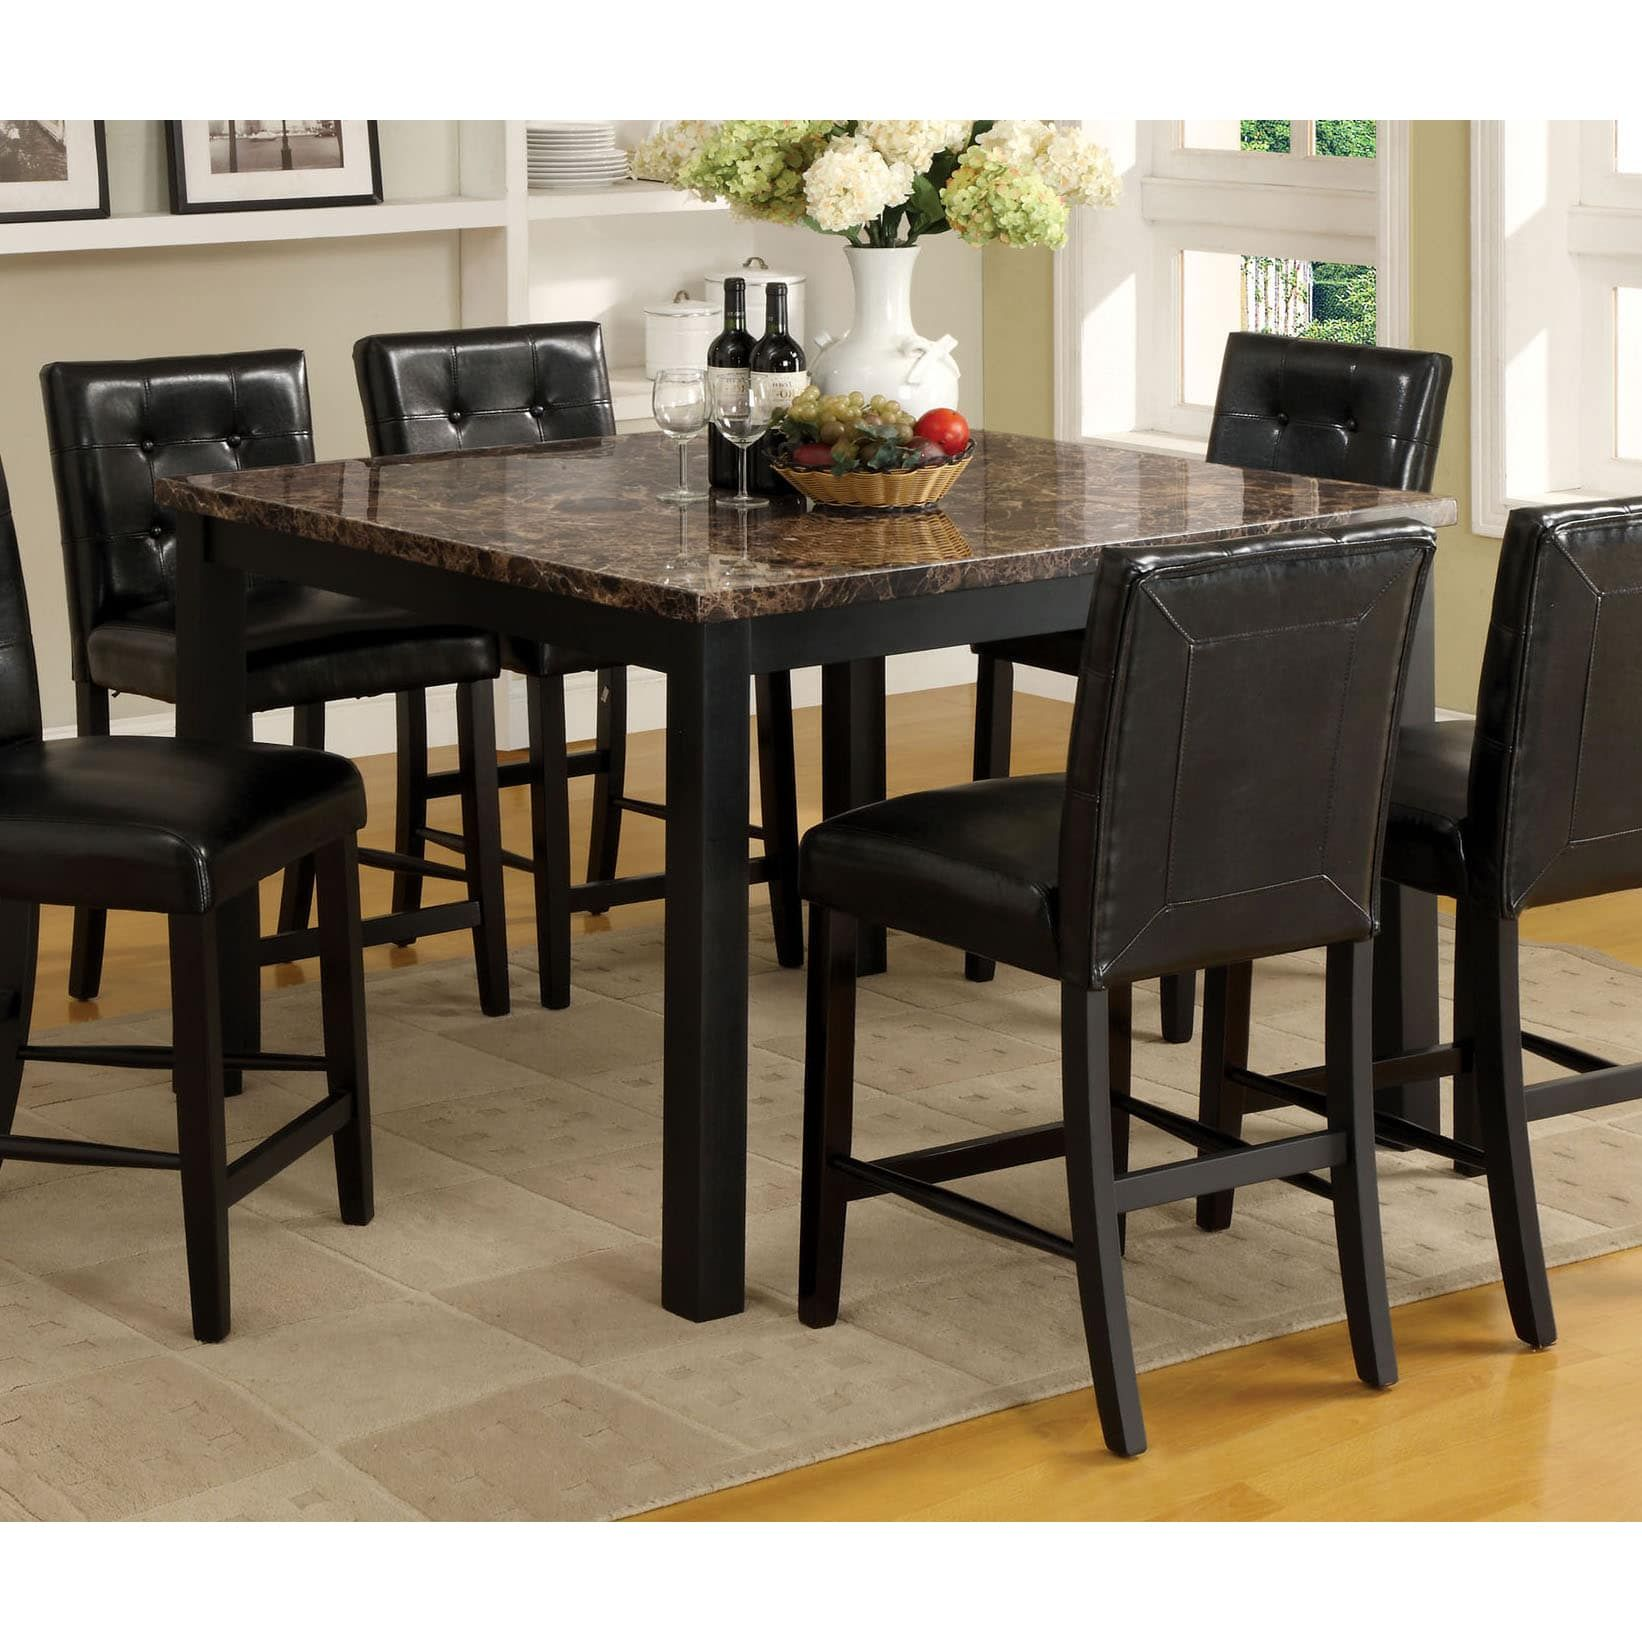 Online Shopping Bedding Furniture Electronics Jewelry Clothing More Counter Height Dining Table Counter Height Dining Sets Dining Table